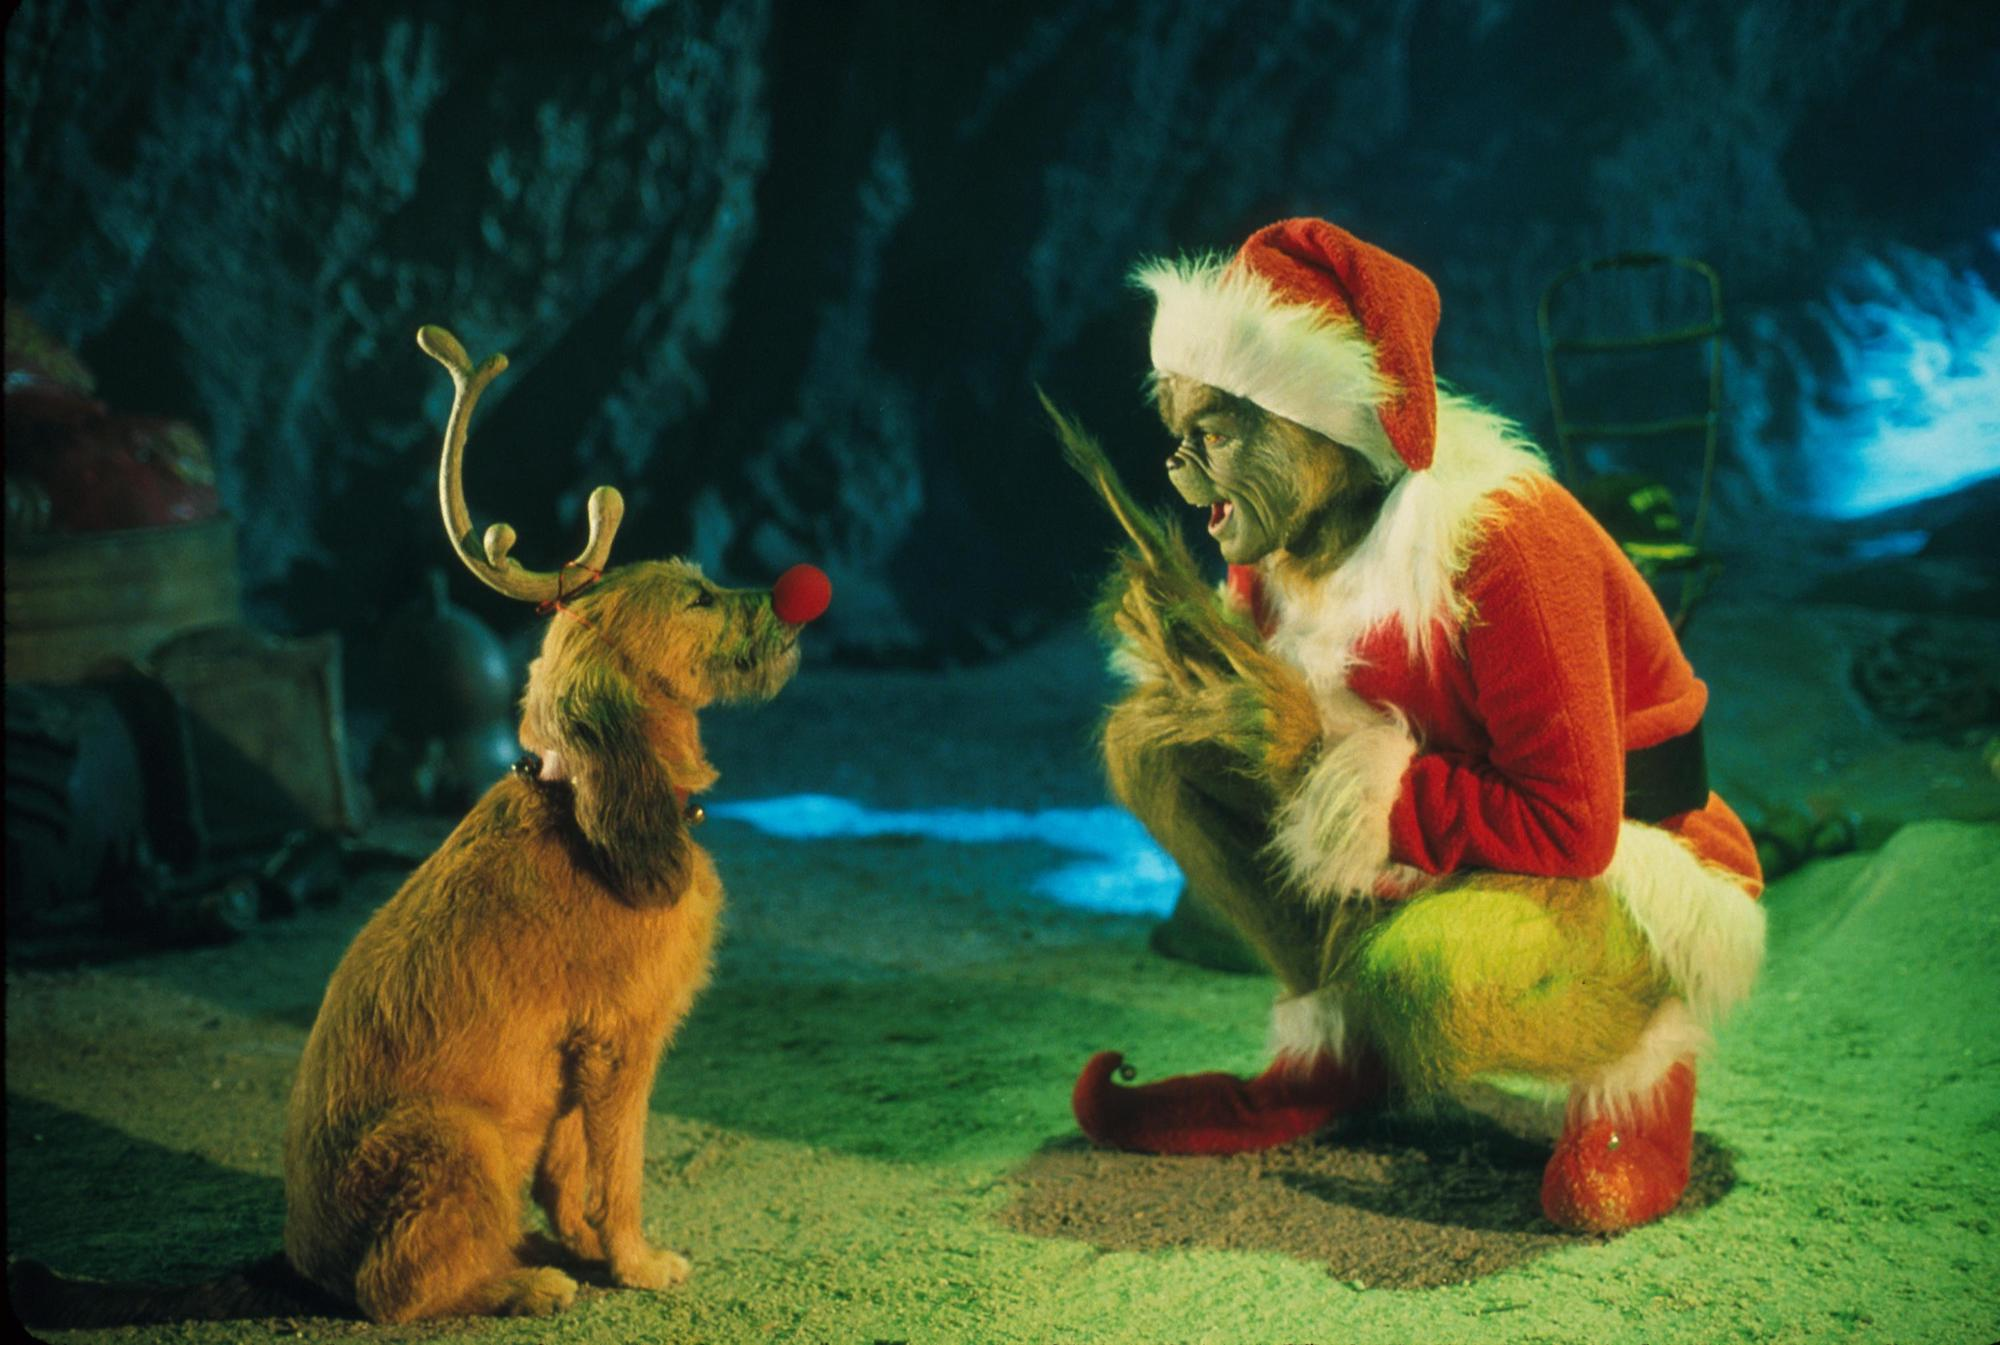 """The Grinch, Played By Jim Carrey, Conspires With His Dog Max To Deprive The Whos Of Their Favorite Holiday In 'Dr. Seuss' How The Grinch Stole Christmas,"""" Directed By Ron Howard"""